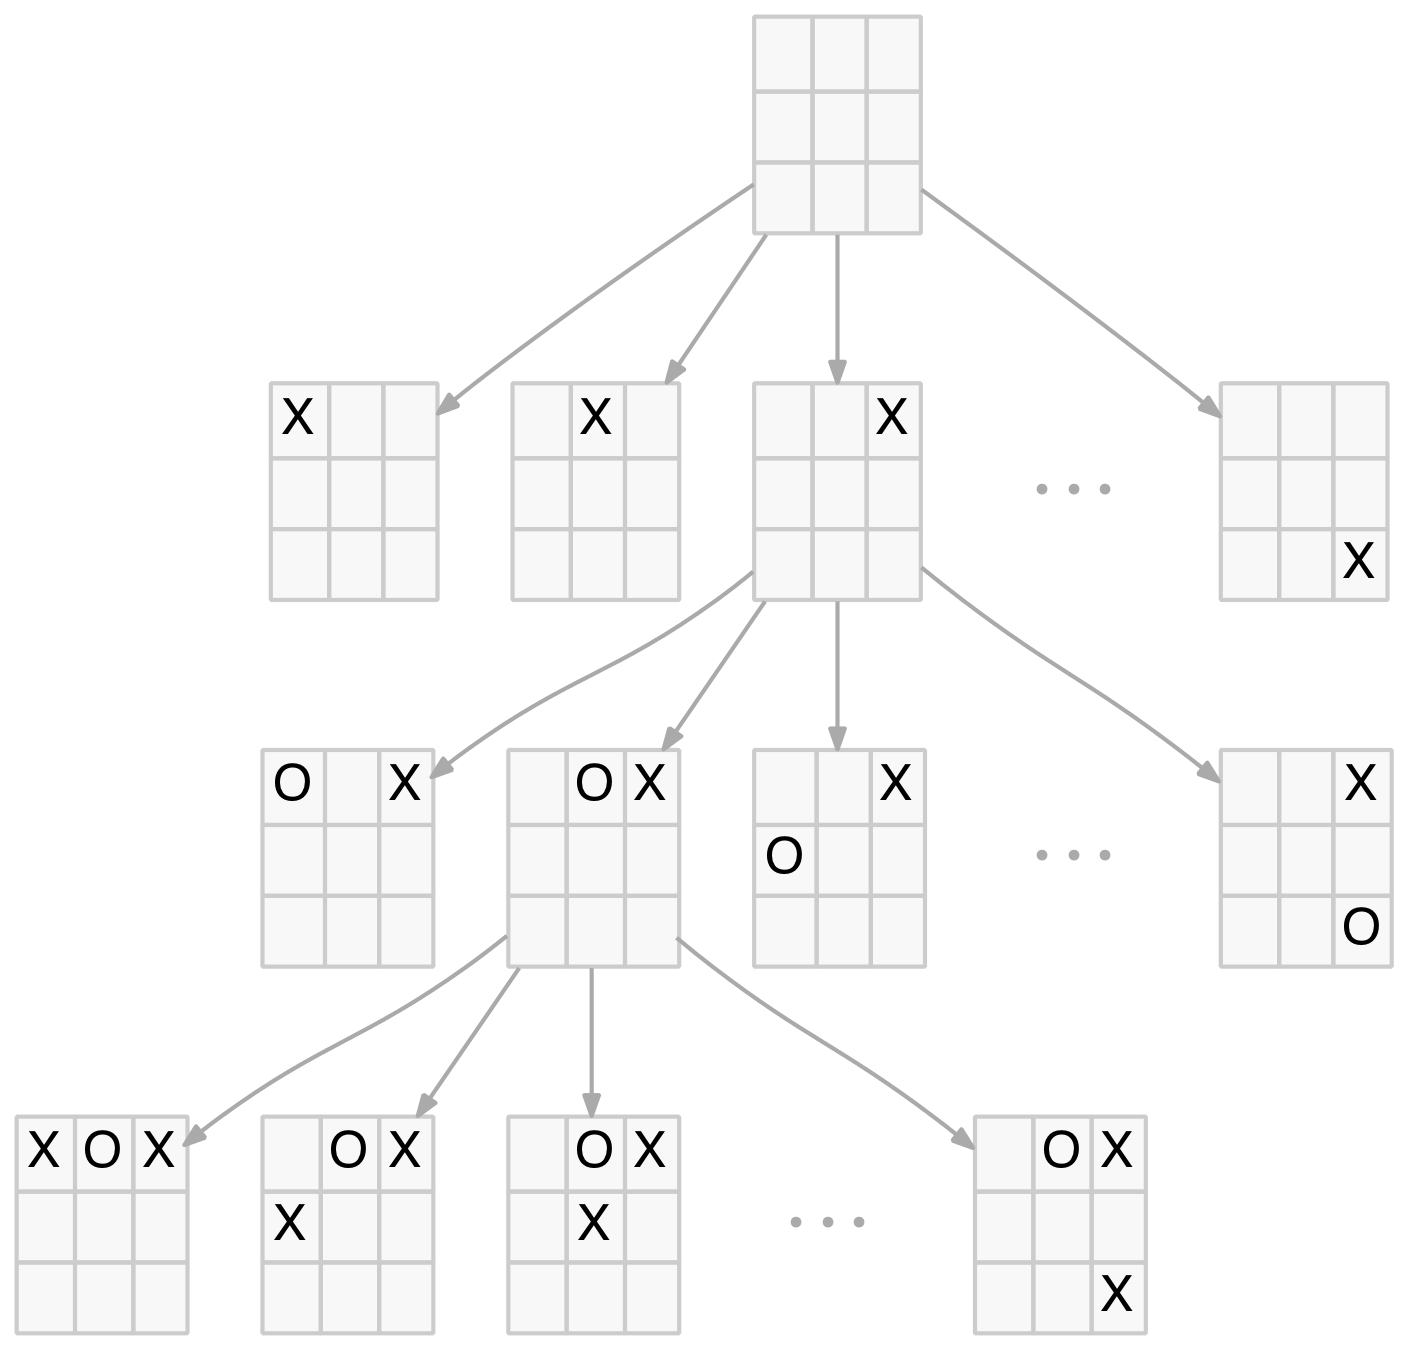 Partial Game Tree